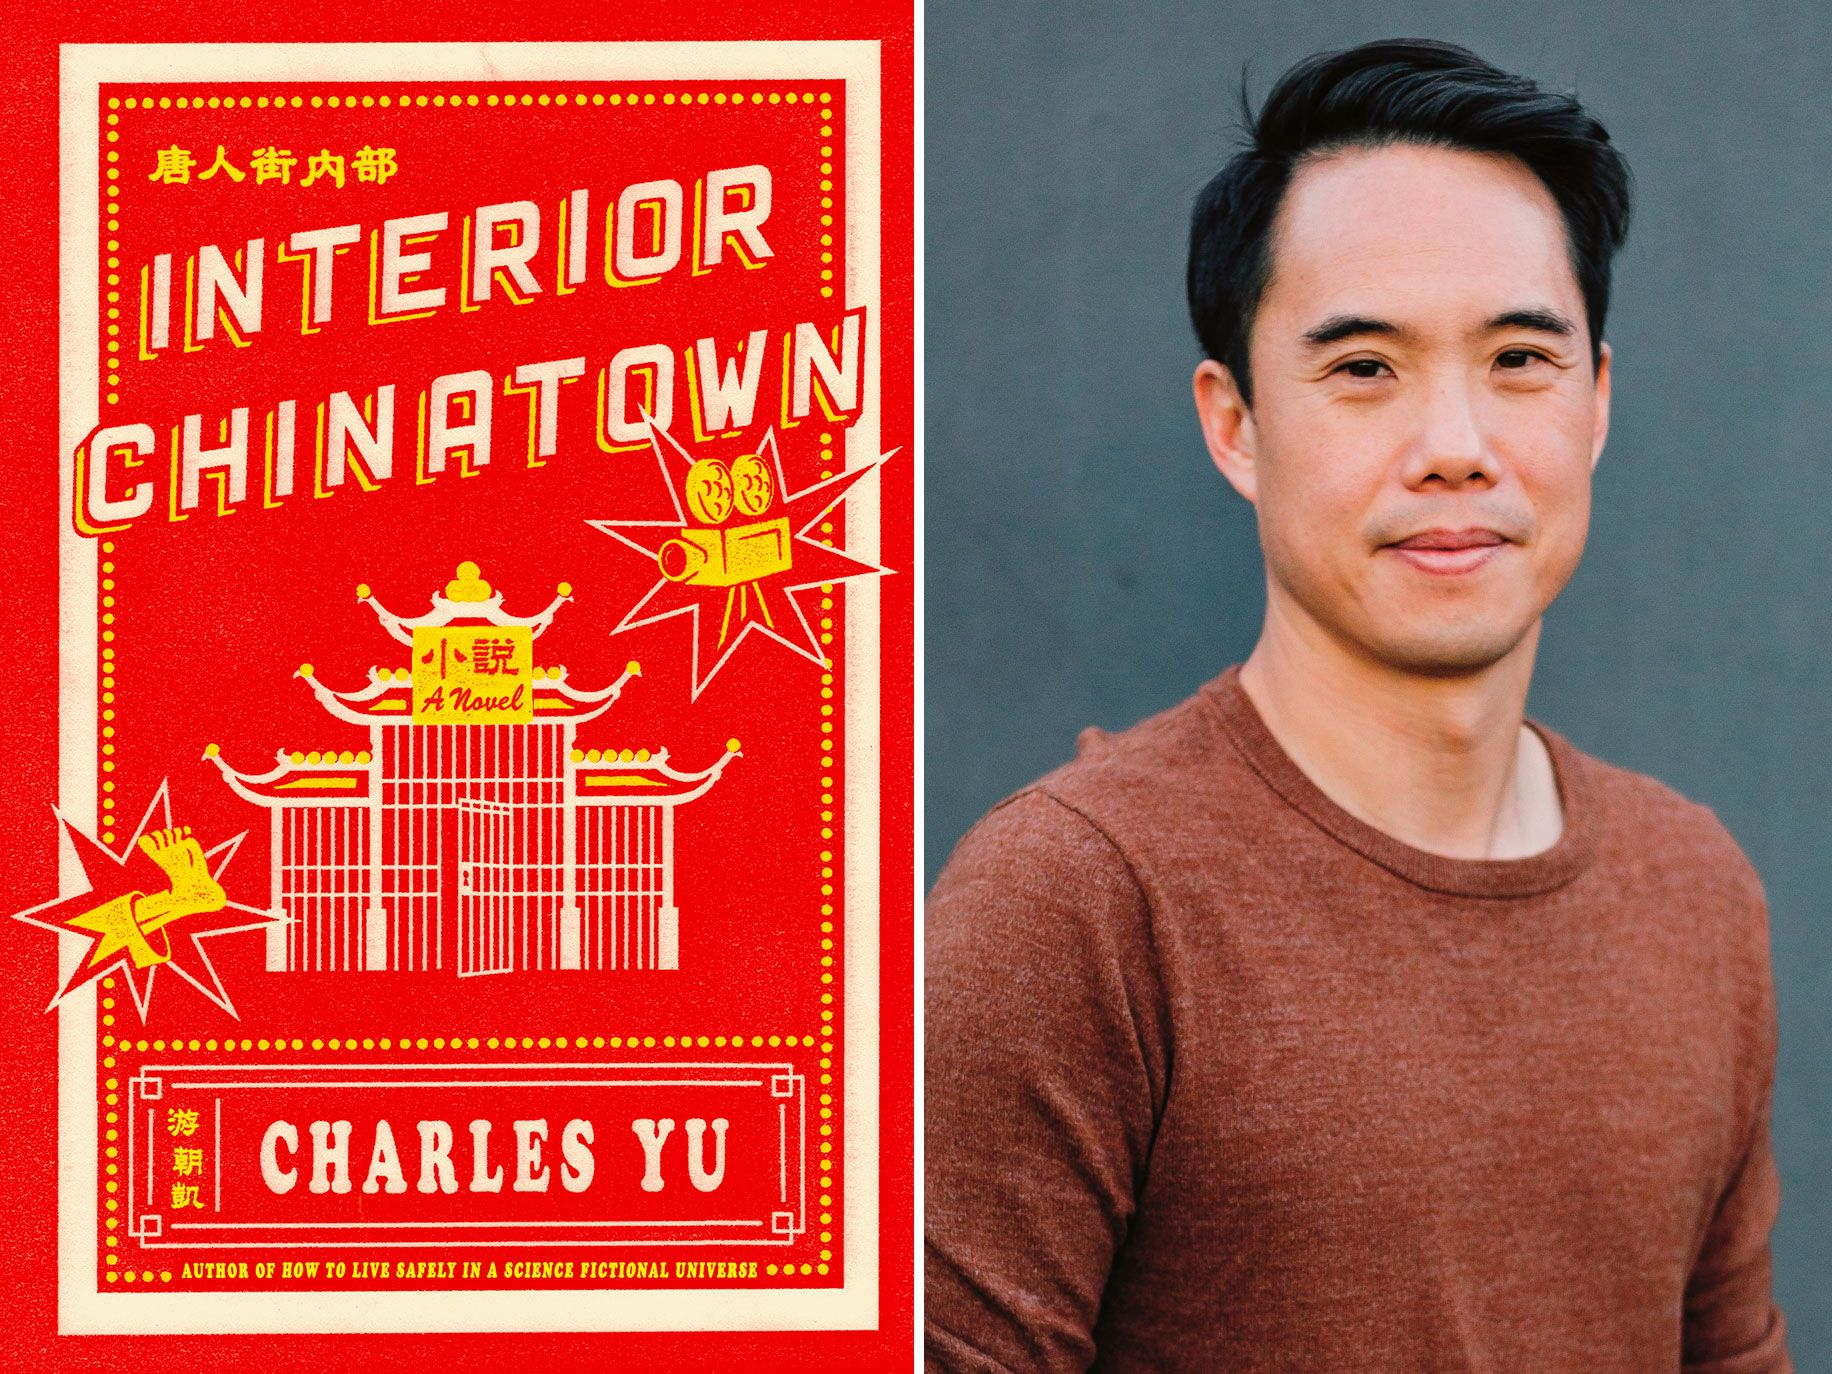 Interior Chinatown: A Novel, by Charles Yu, Pantheon, 288 pages, $25.95